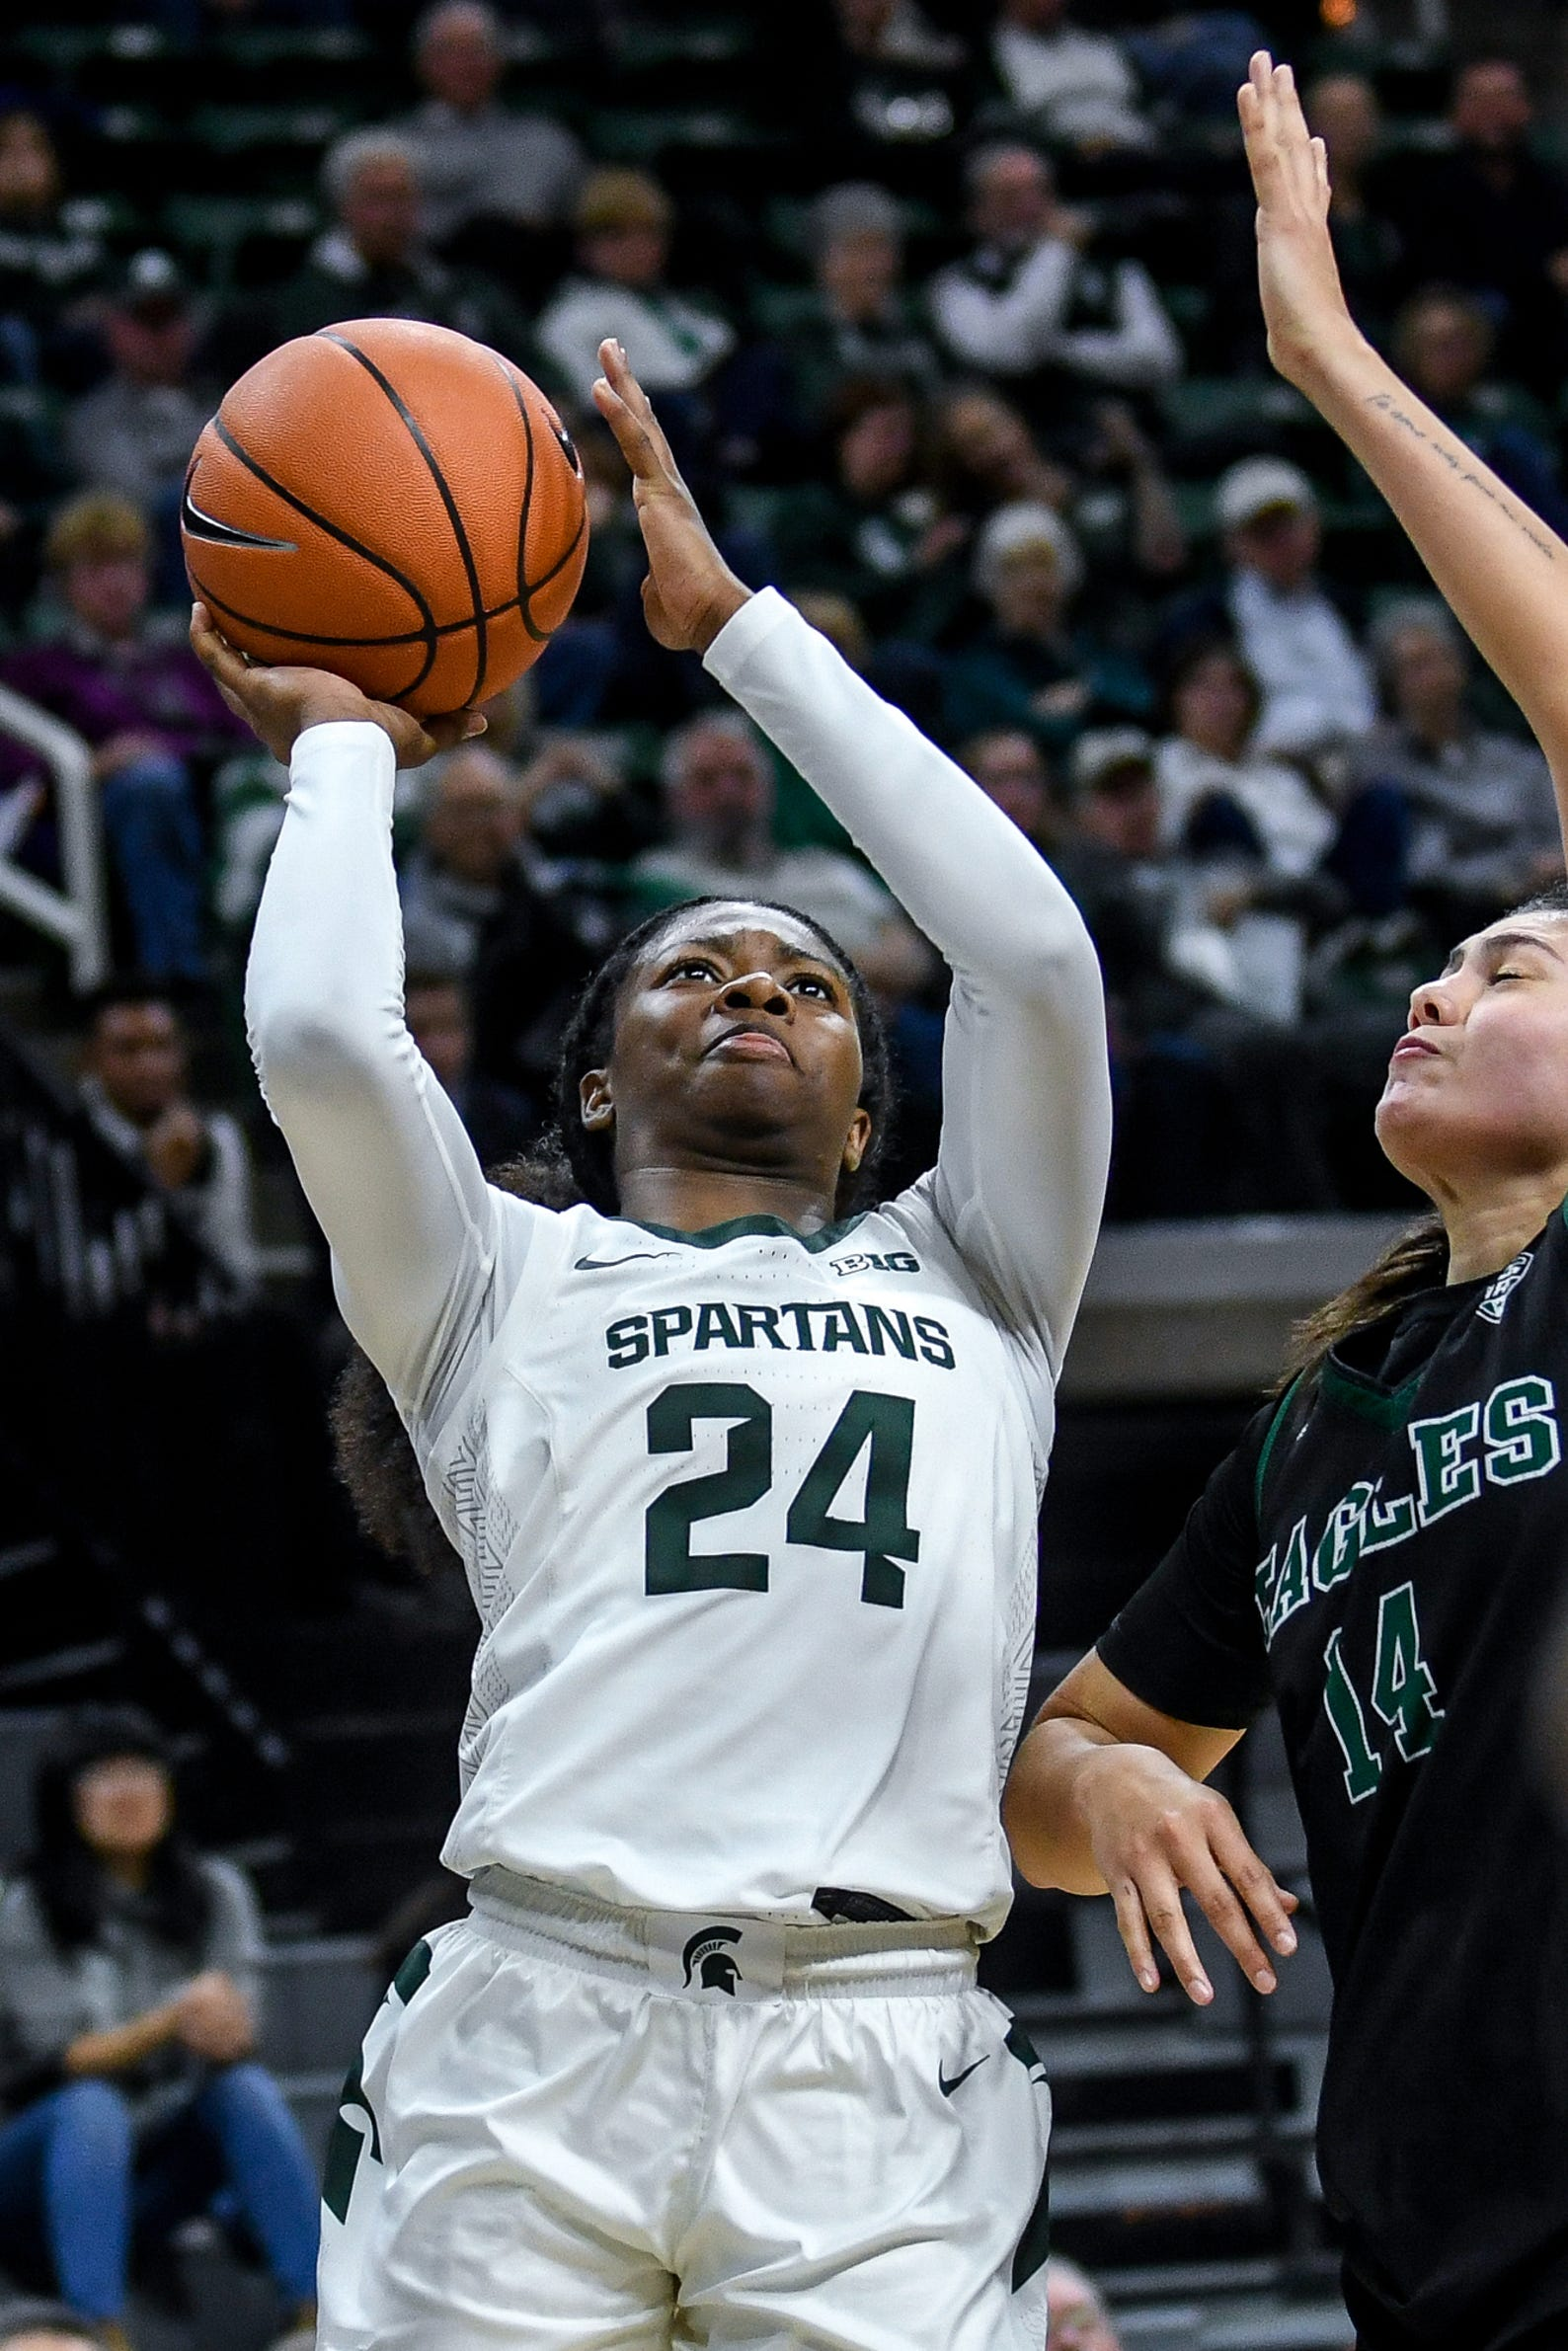 Michigan State's Nia Clouden, left, scores as Eastern Michigan's Natalia Pineda defends during the  fourth quarter on Tuesday, Nov. 5, 2019, at the Breslin Center in East Lansing.